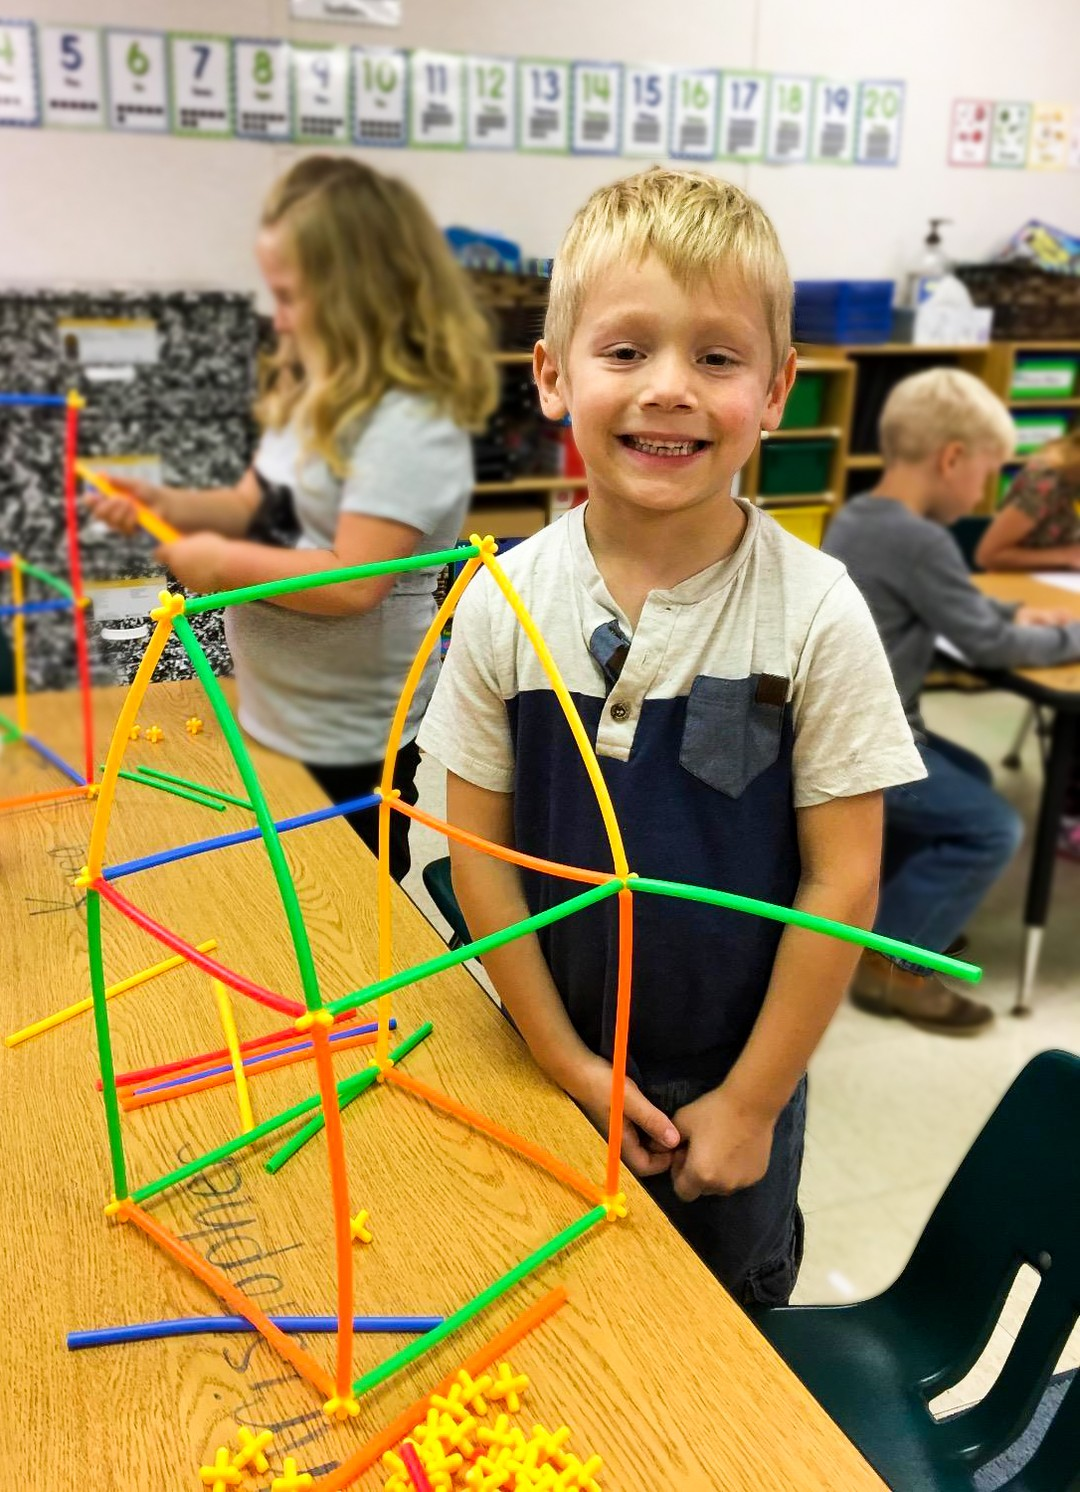 Straw Structures Building Construction Kit for Kids ...